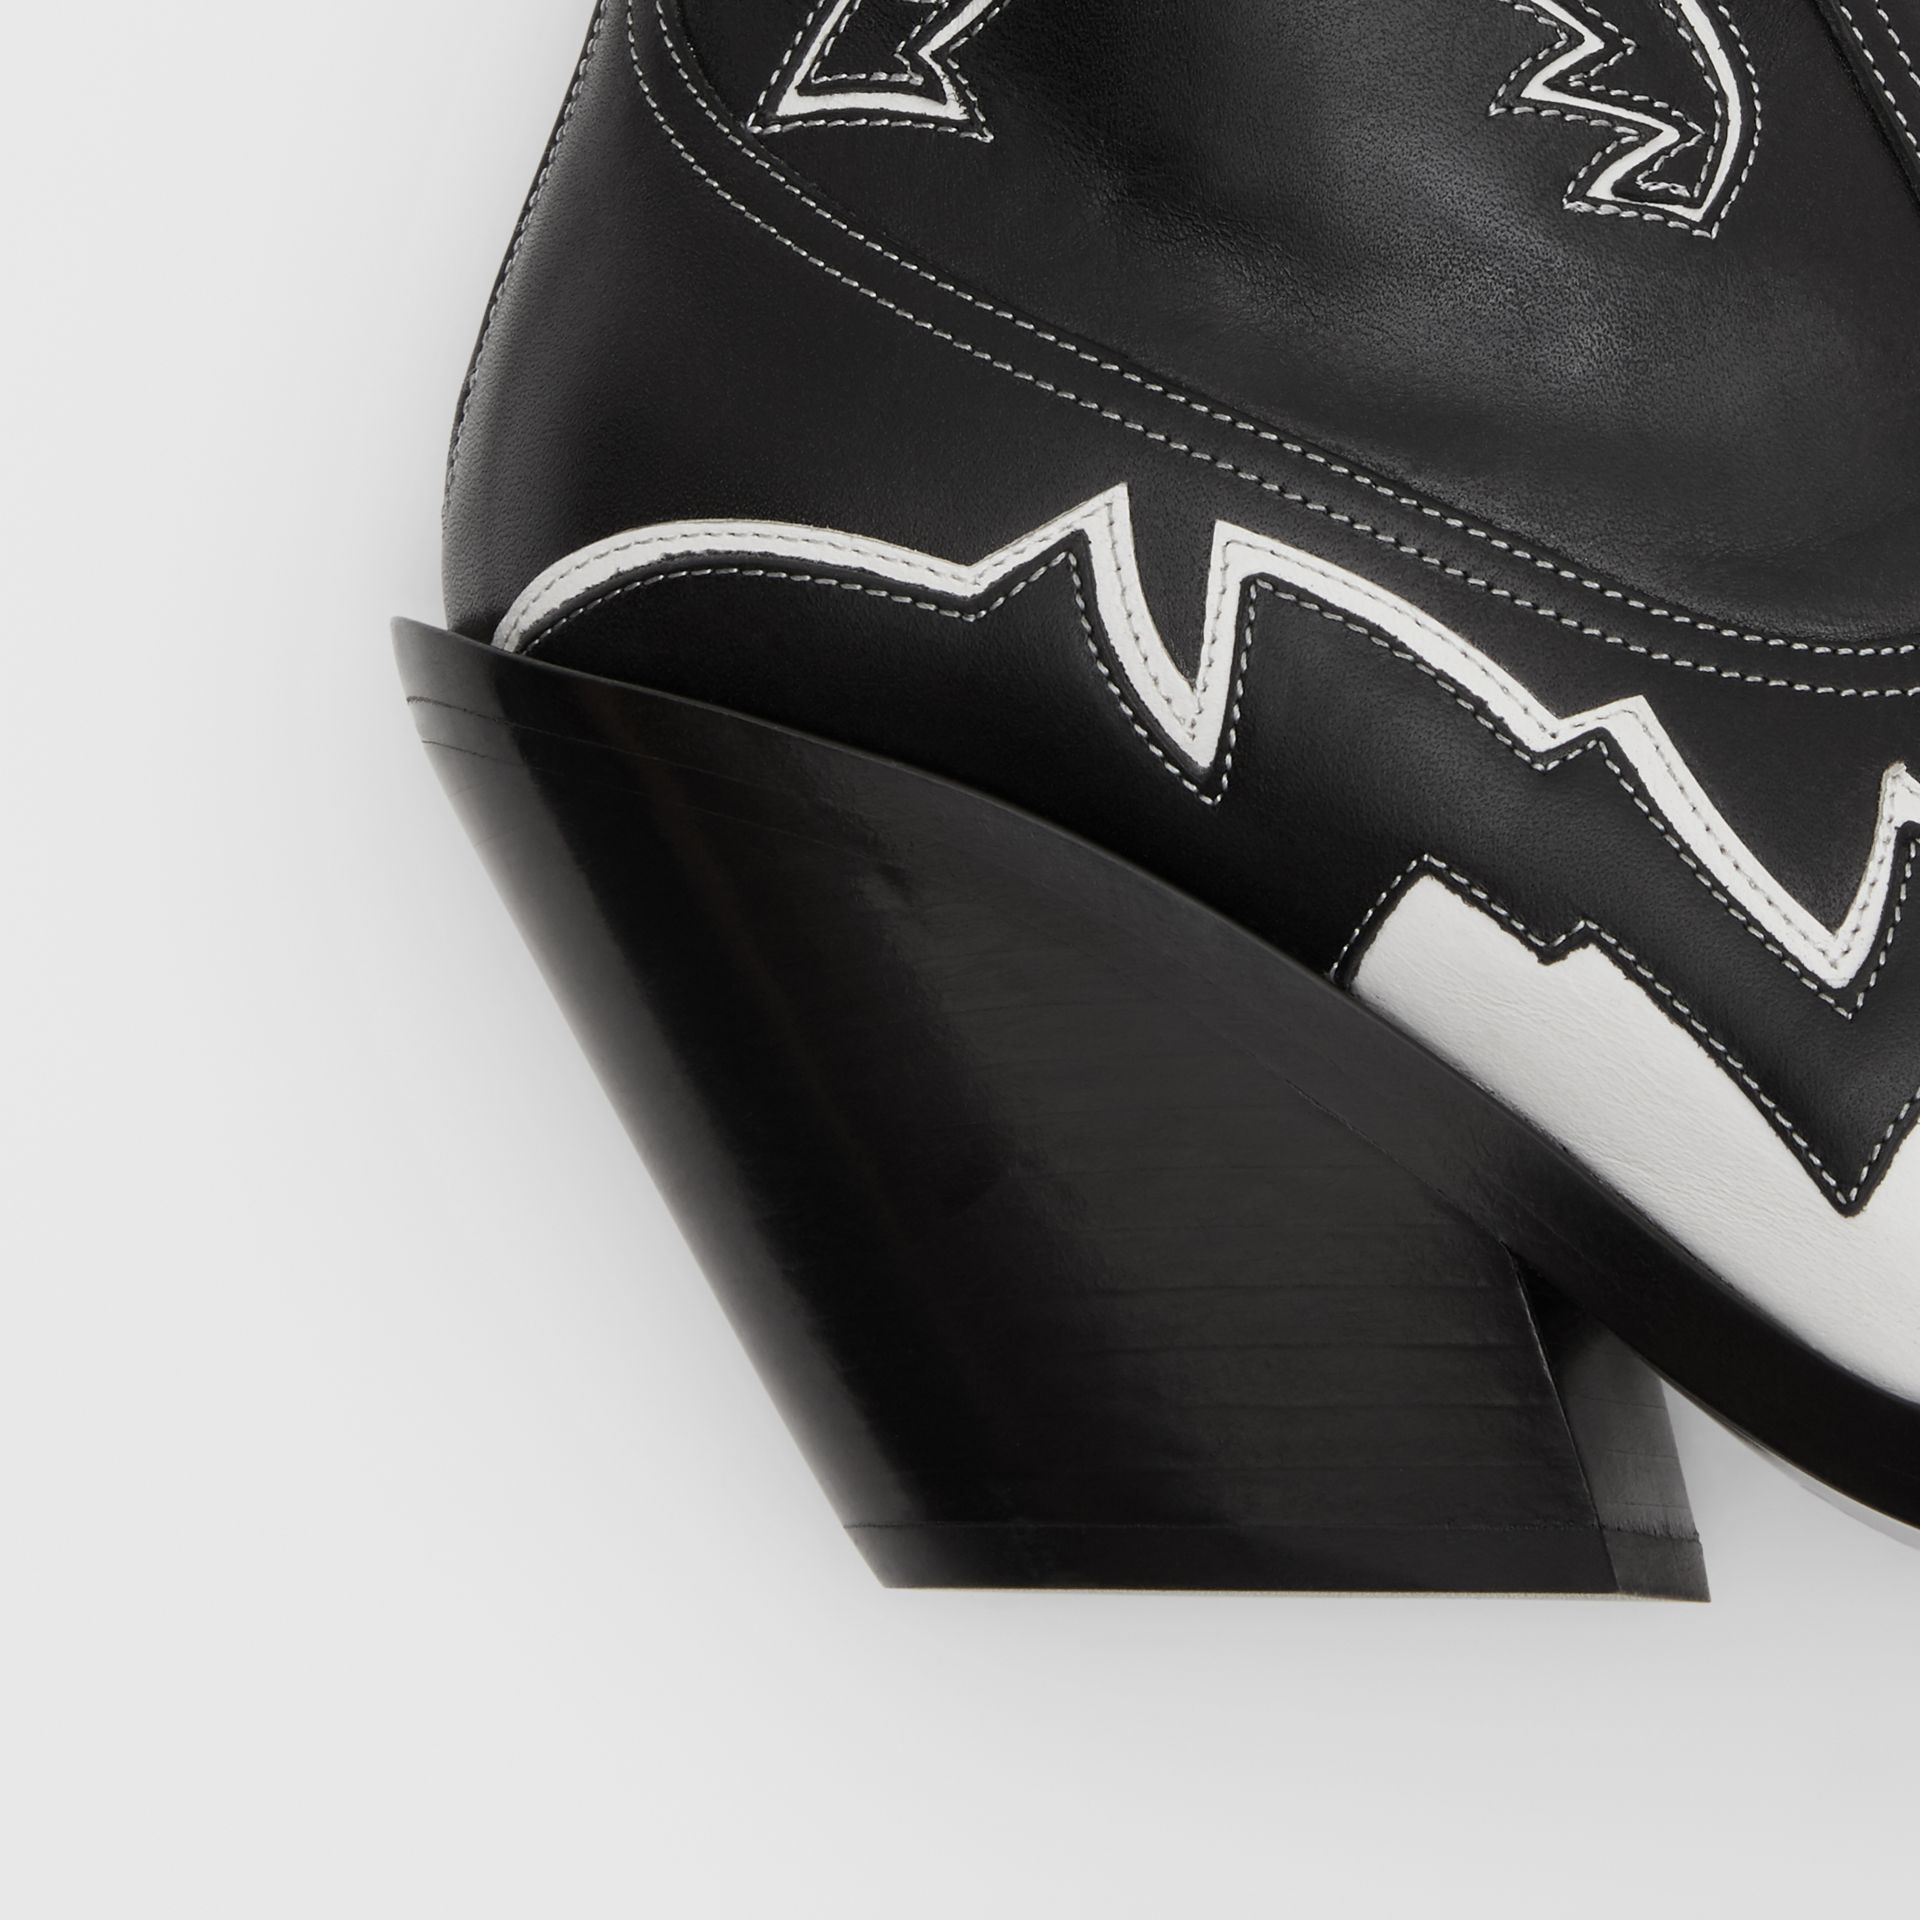 Topstitch Appliqué Leather Cowboy Boots in Black/white - Women | Burberry United Kingdom - gallery image 1